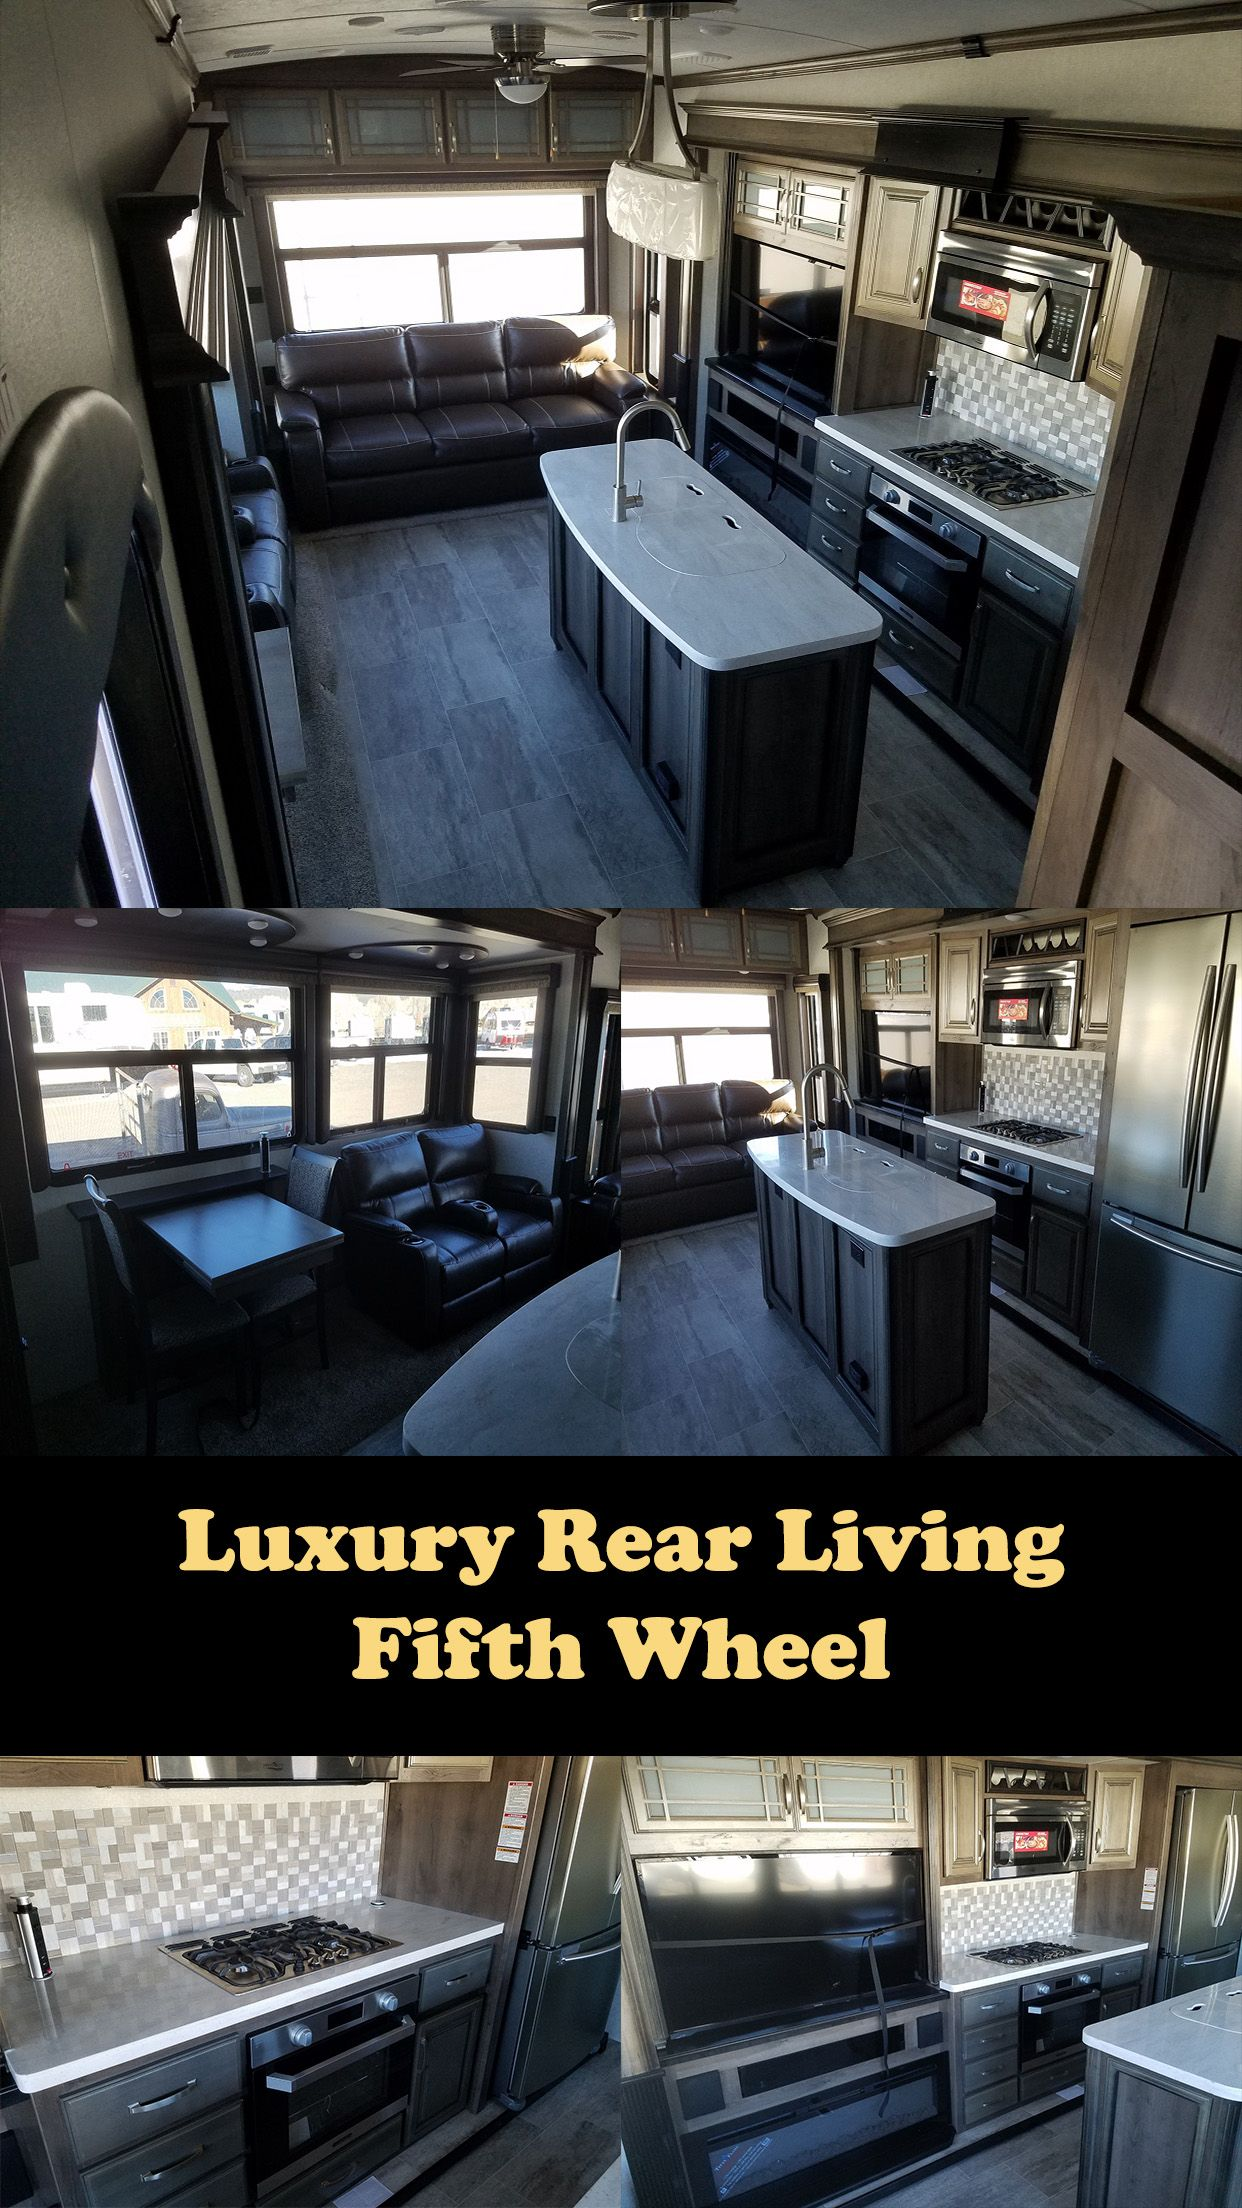 Pure Luxury In Only 35ft Length New For 2018 The Montana 3121rl Fifth Wheel Montana 5th Wheel Montana Fifth Wheel Keystone Montana